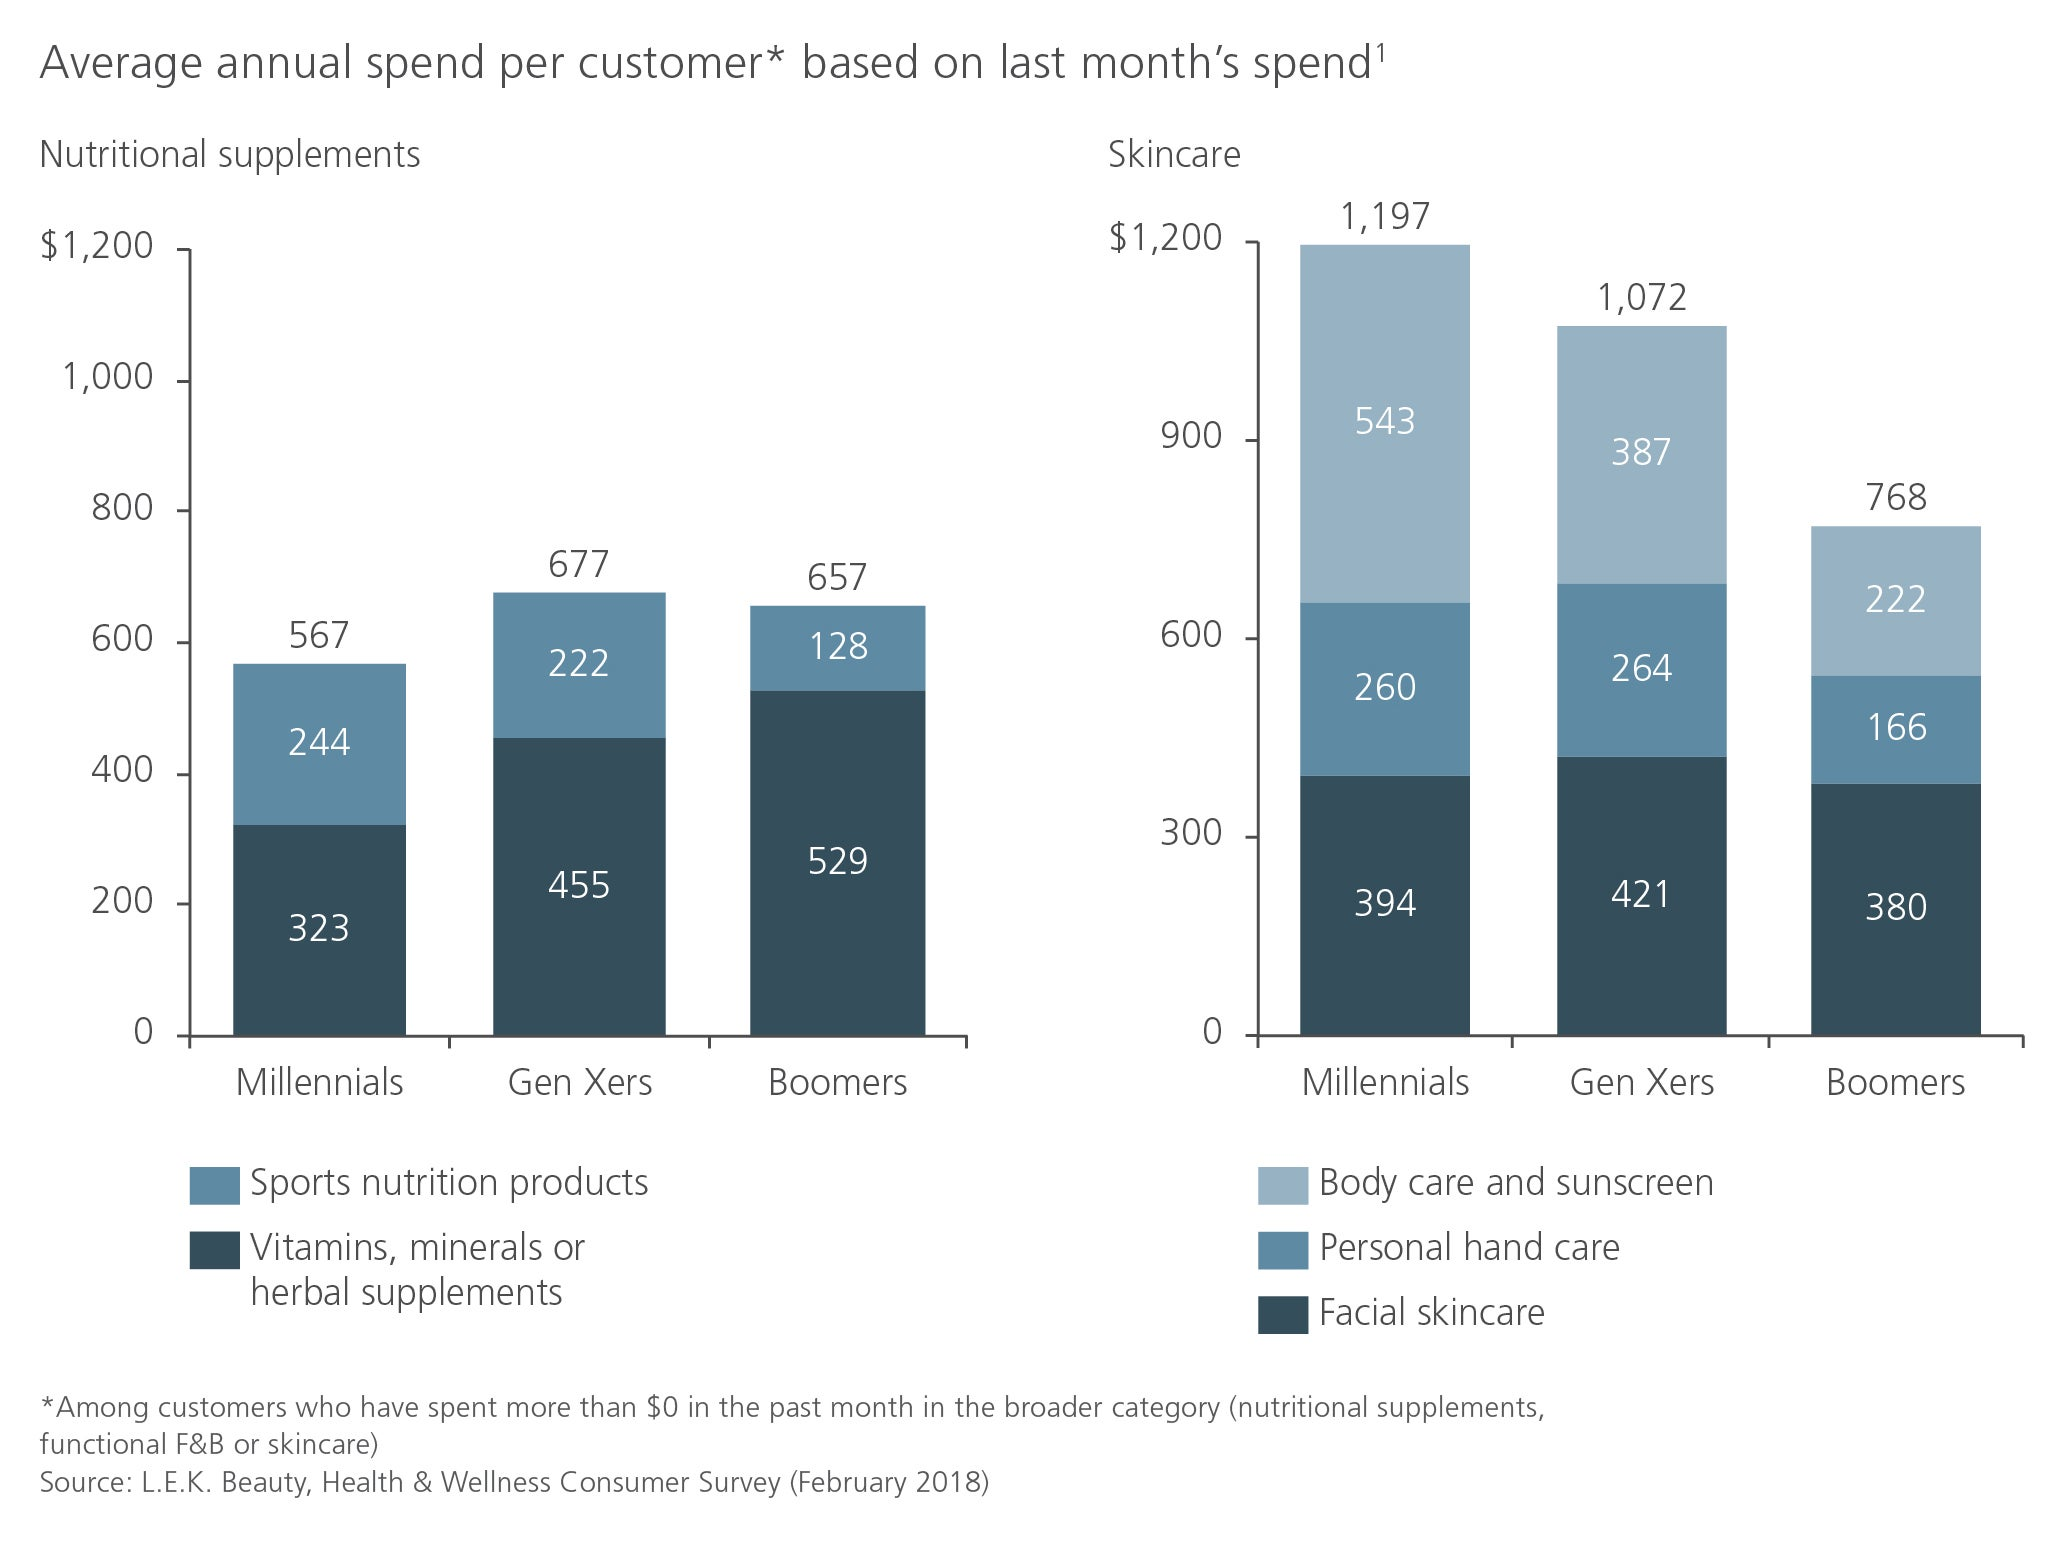 H&W average annual spend per customer